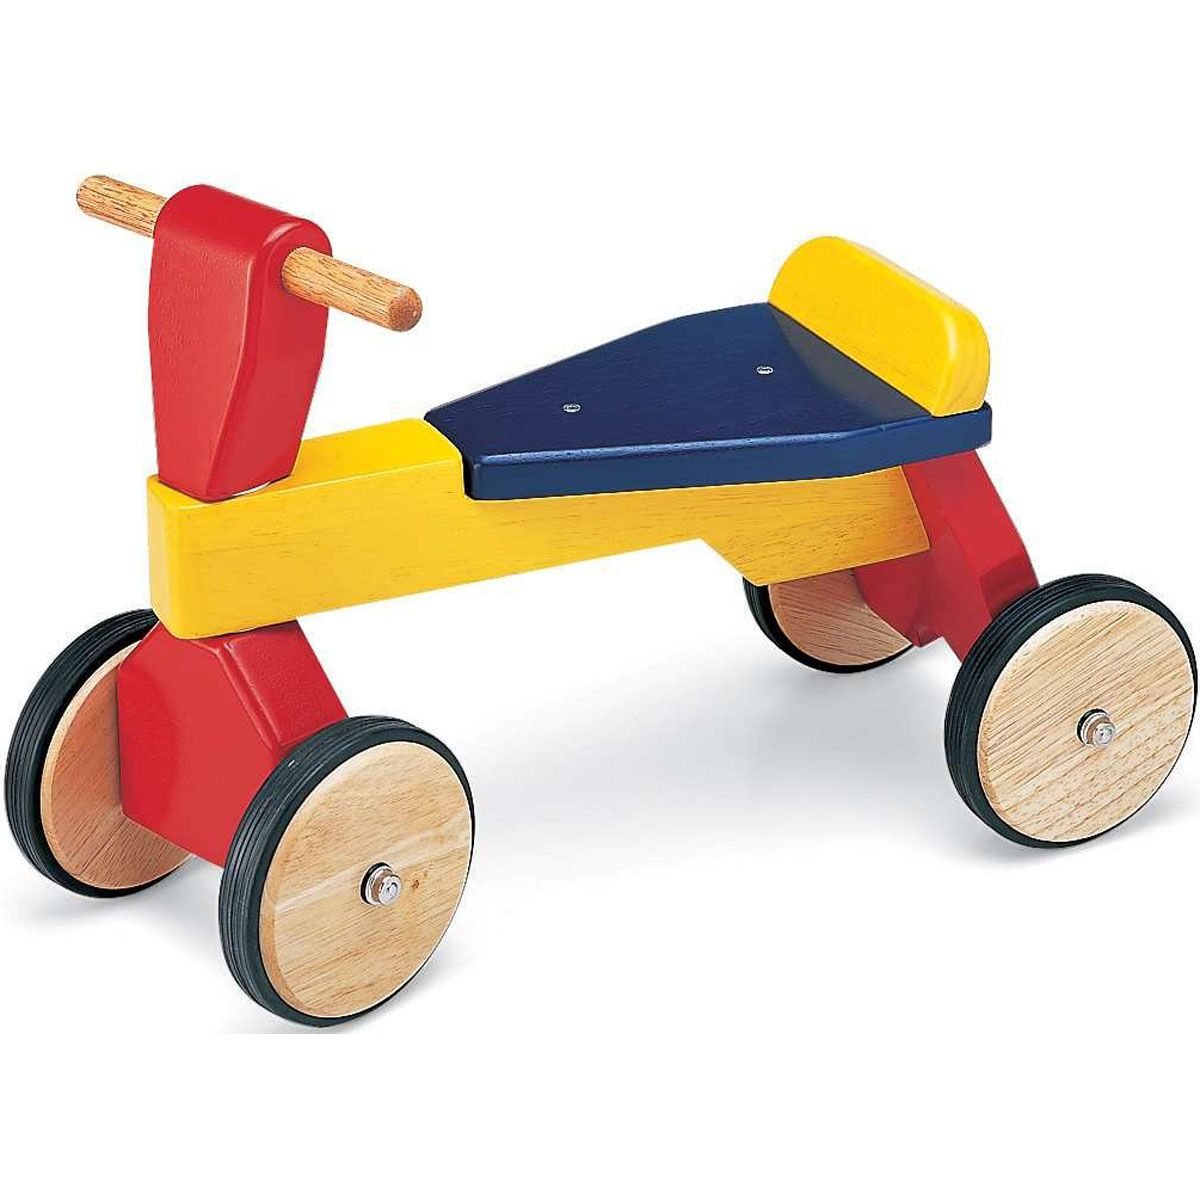 Baby Wooden Toys : Wooden toys for children traditional childrens